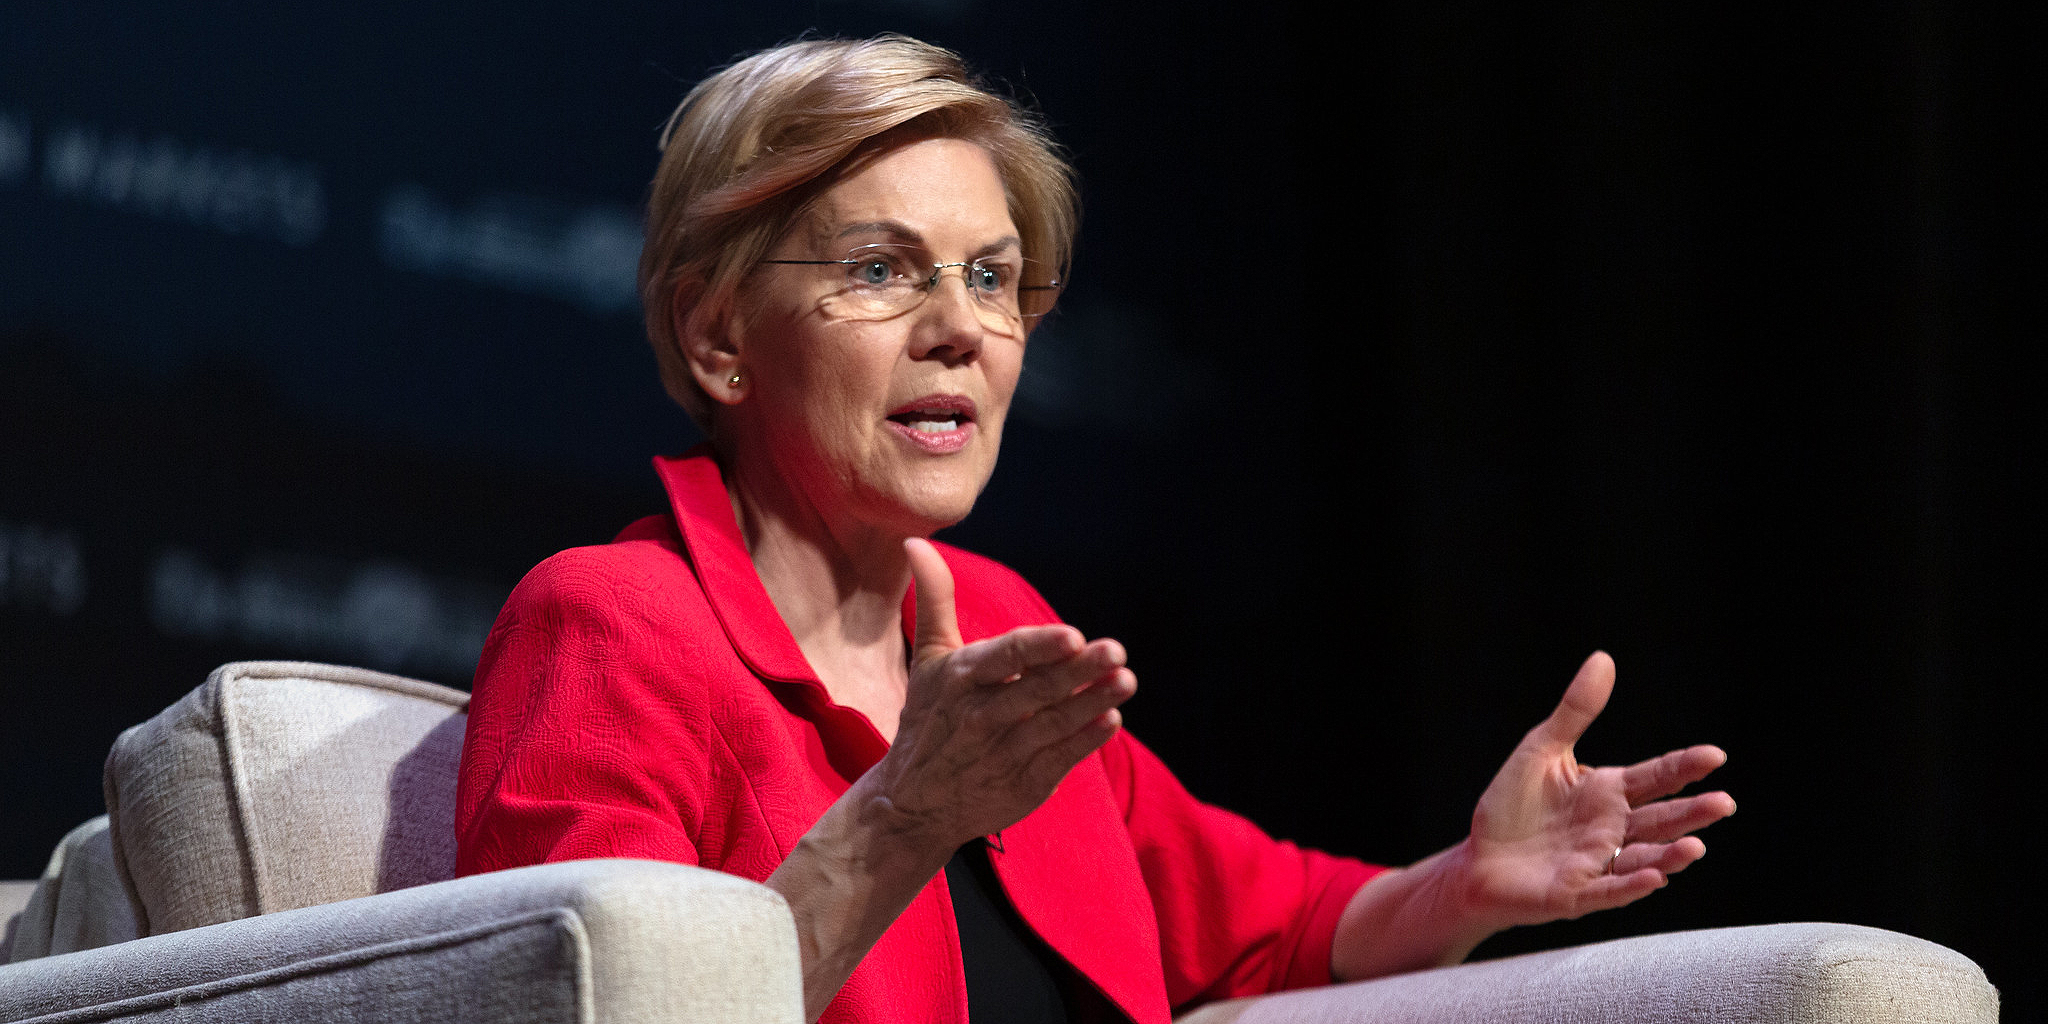 Elizabeth Warren wearing a red blazer, sitting in a beige chair, and holding both hands out as she gestures to the audience she's speaking to